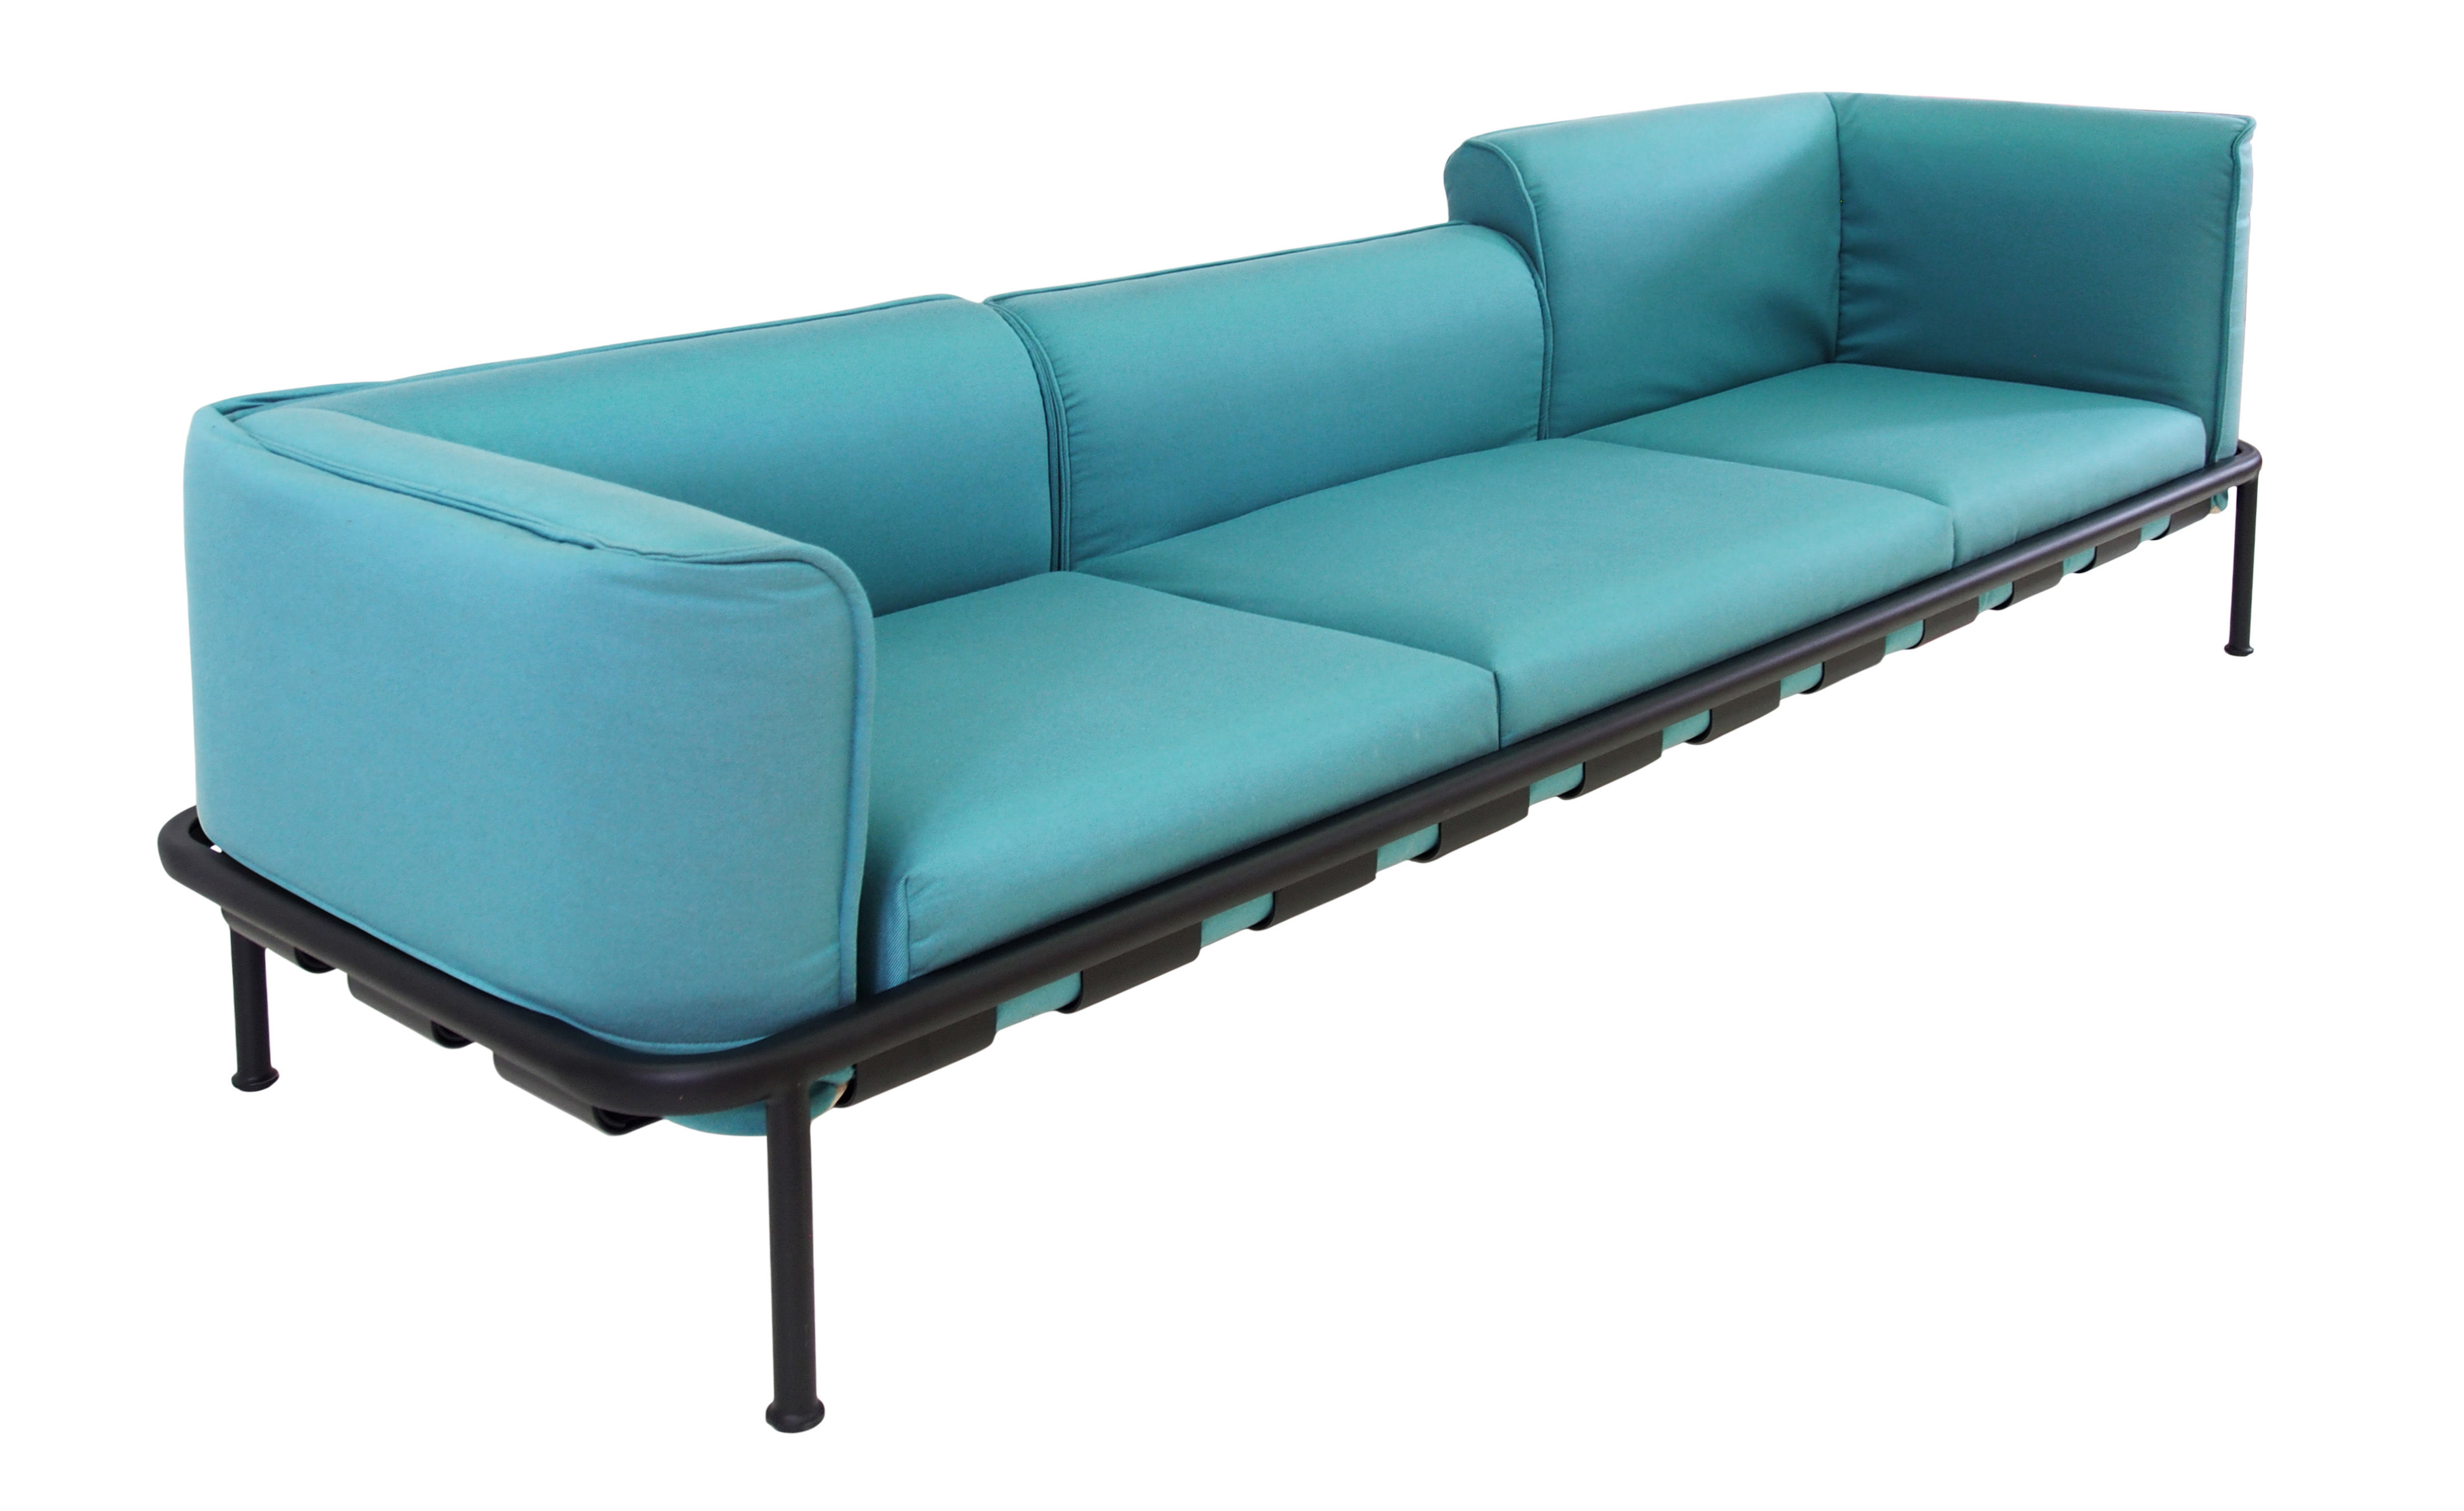 canap droit dock 3 places l 289 bleu turquoise. Black Bedroom Furniture Sets. Home Design Ideas